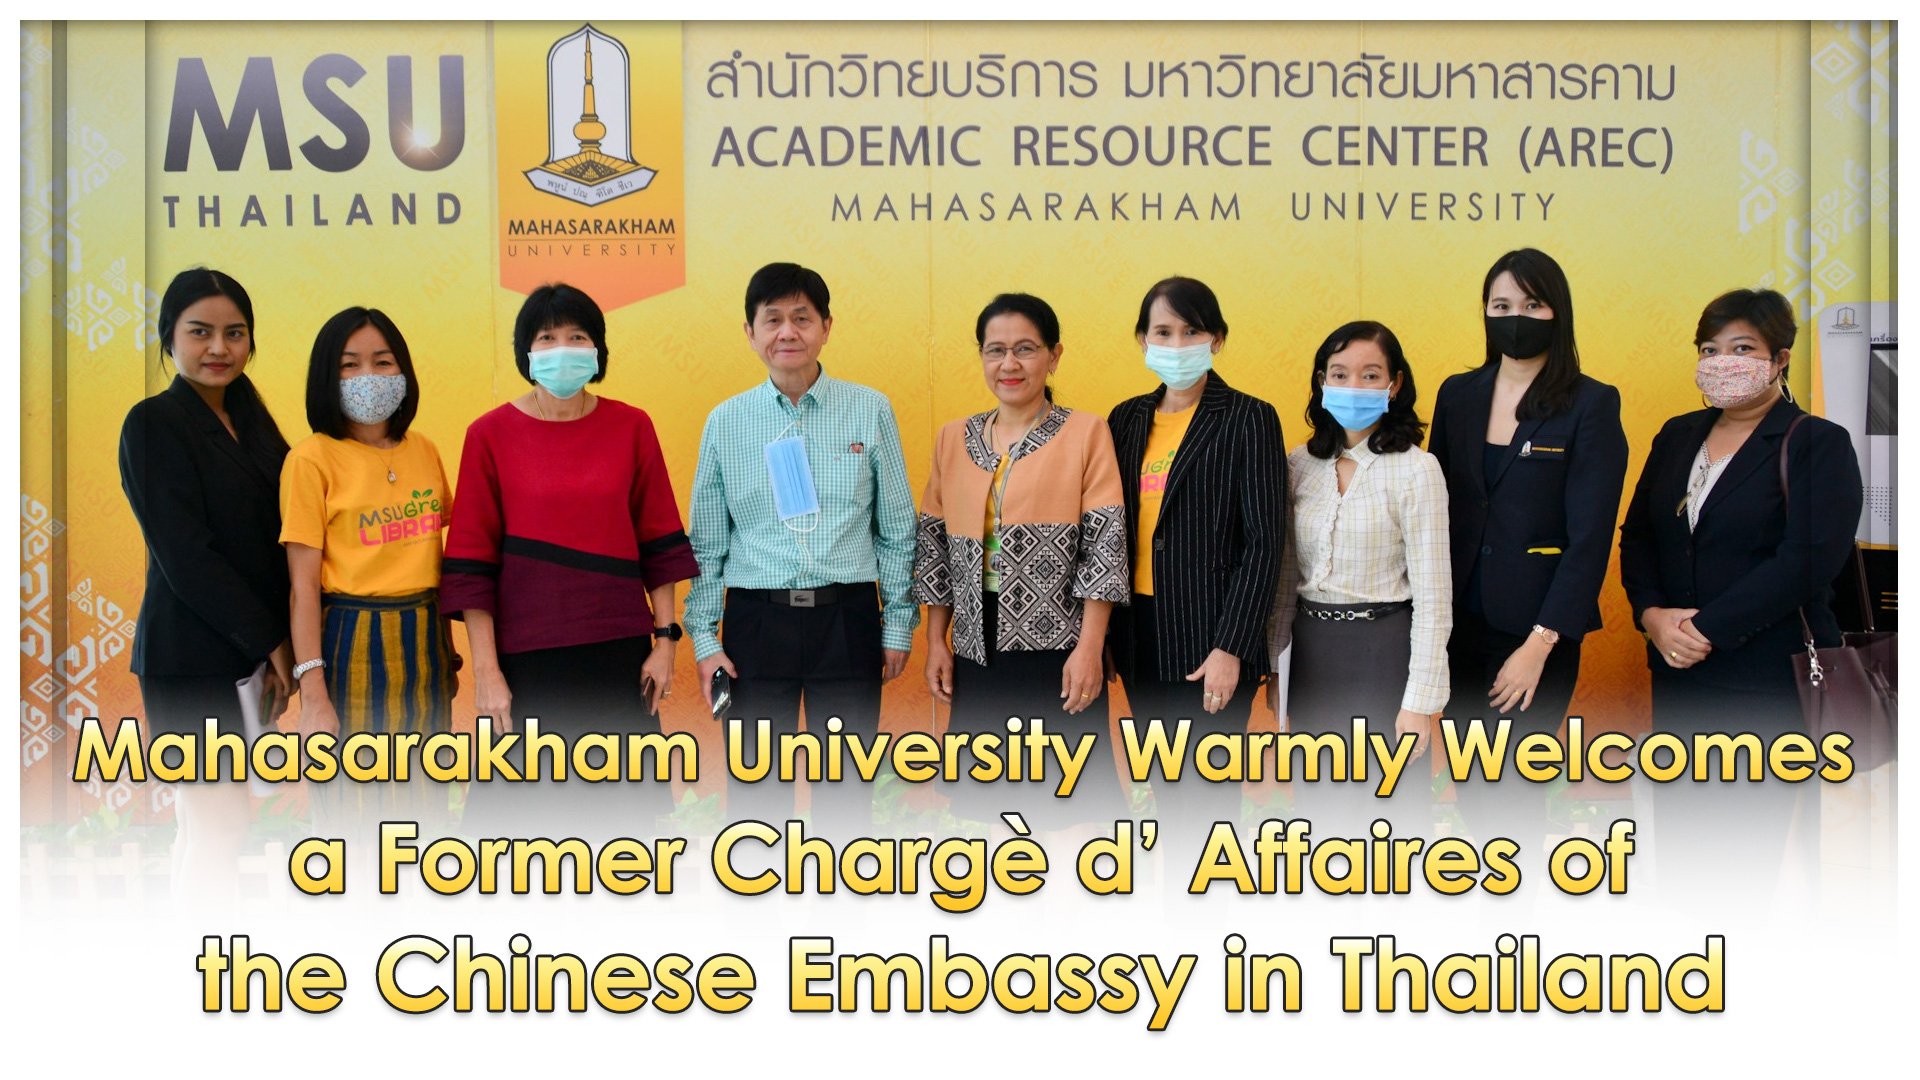 Mahasarakham University Warmly Welcomes a Former Chargè d' Affaires of the Chinese Embassy in Thailand.